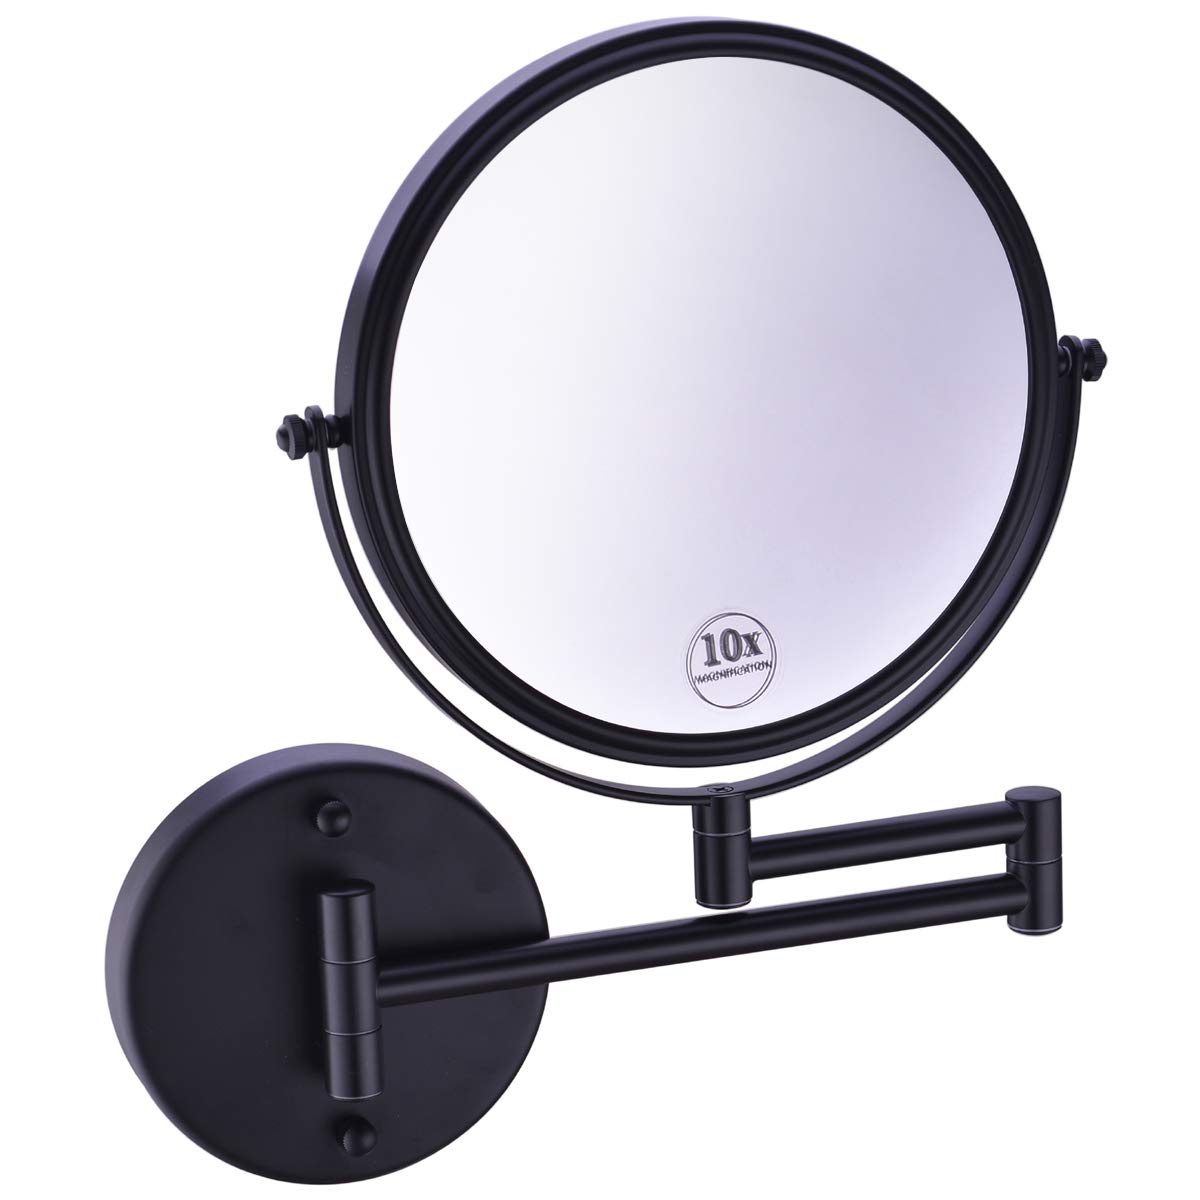 Anpean Wall Mounted Makeup Mirror 10x Magnification with 8 Inch Double Sided Swivel, Matte Black